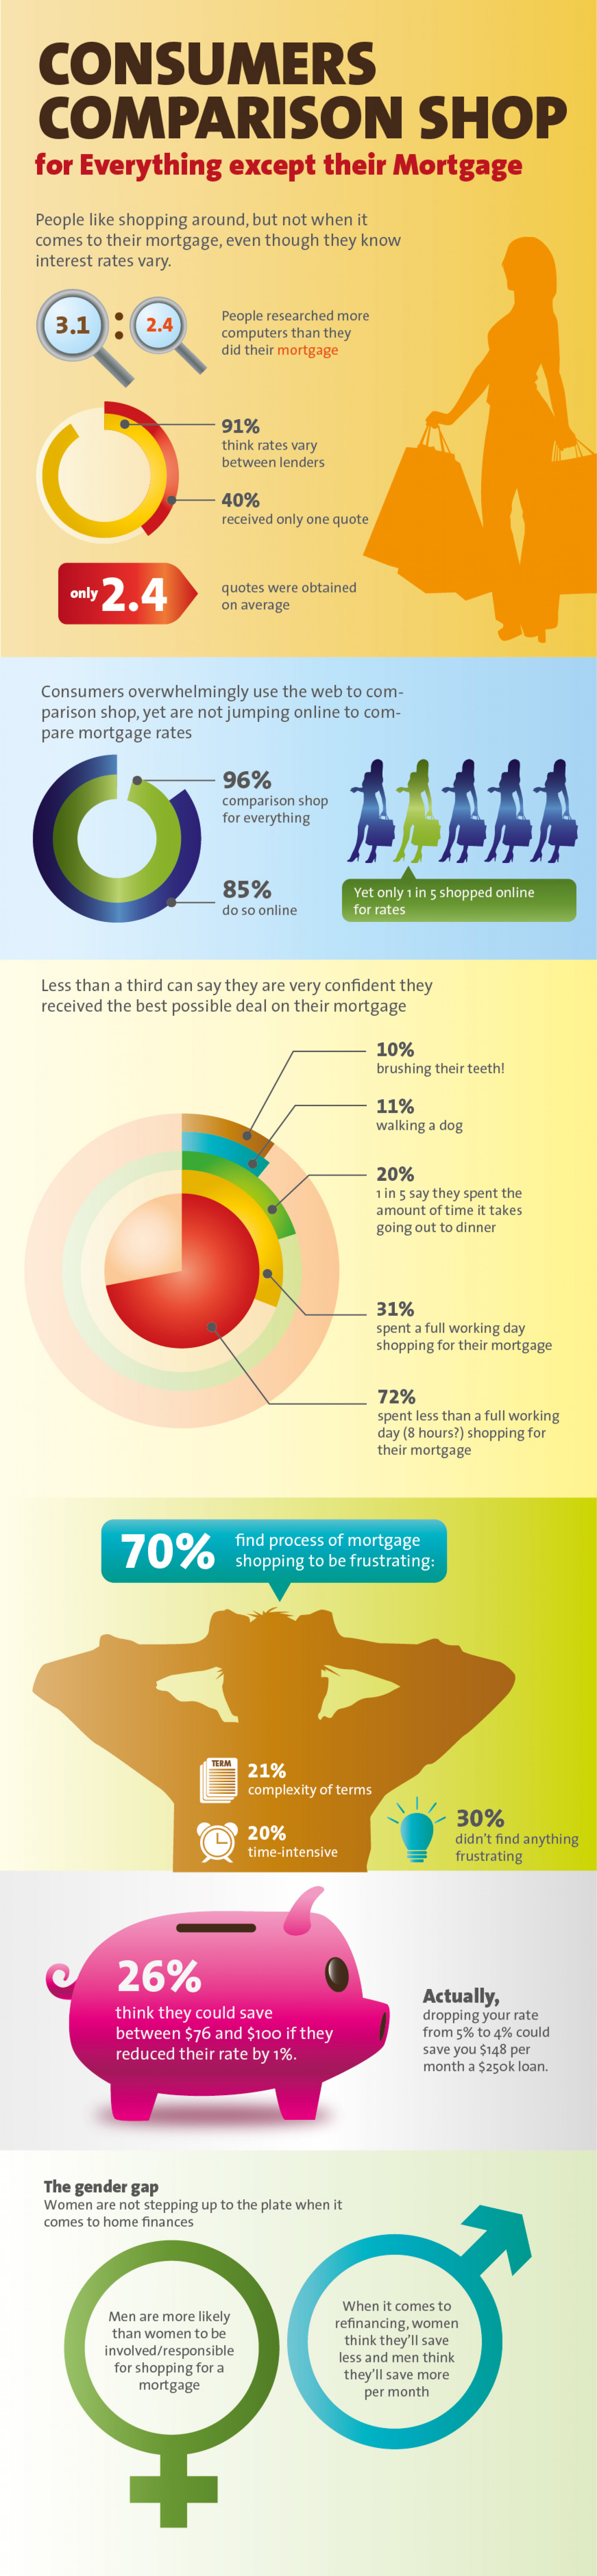 Shopping for that Mortgage Infographic